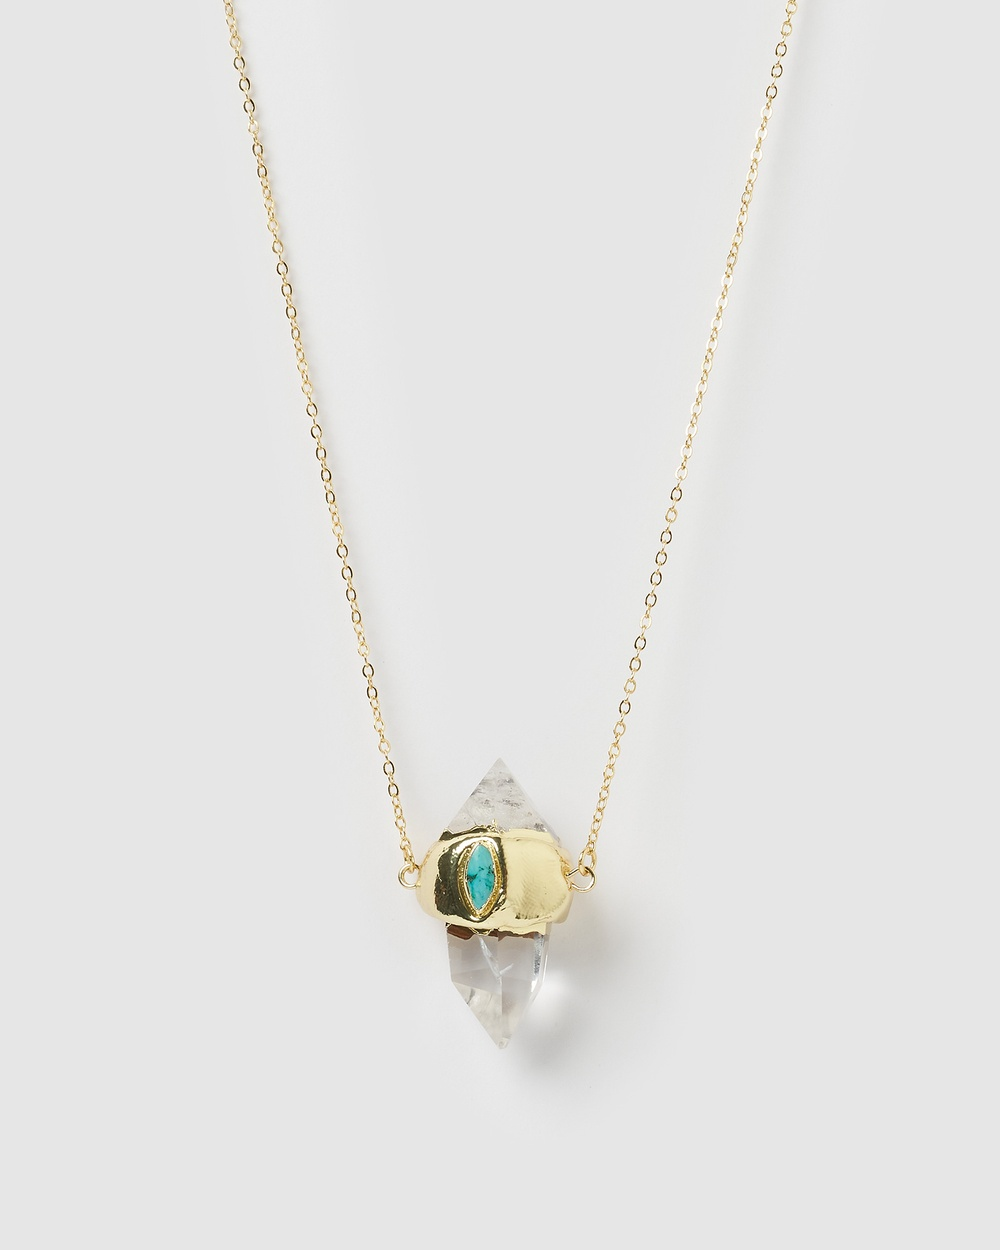 Miz Casa and Co Sabrina Necklace Turquoise Jewellery Turquoise Gold